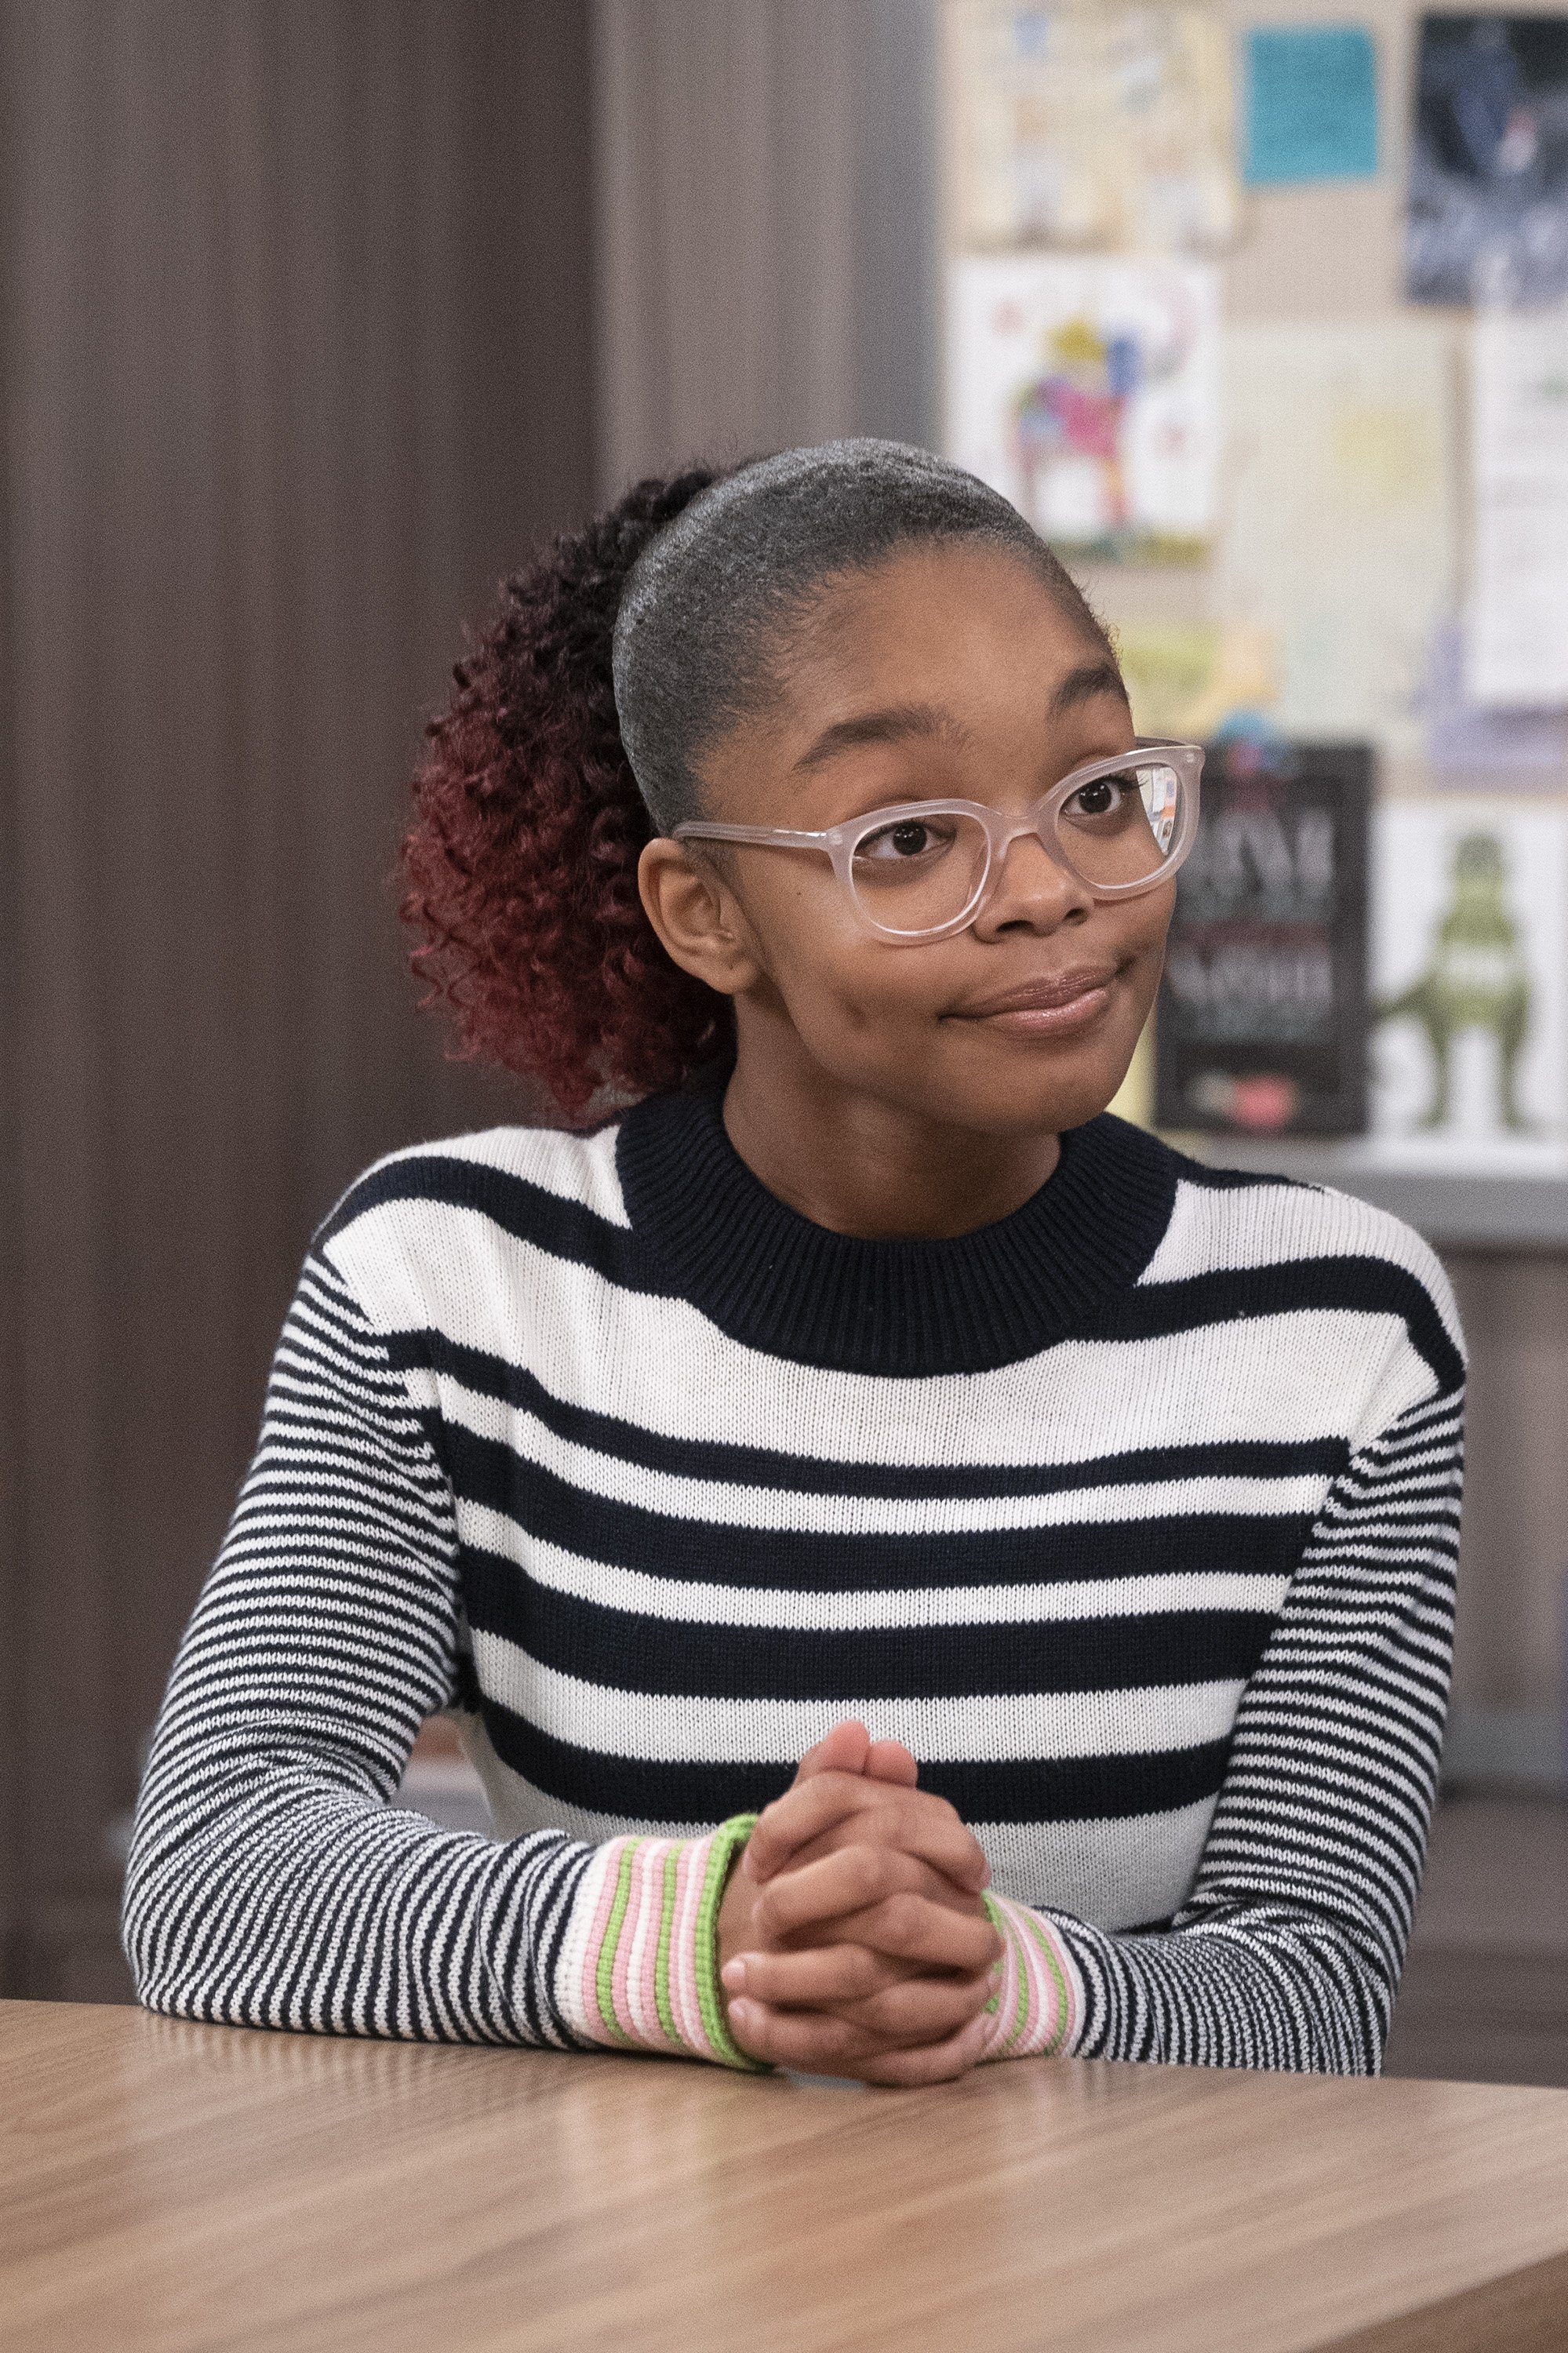 """Pictured: An undated image of actress Marsai Martin on the set of ABC's """"Black-ish"""" during Season 5 